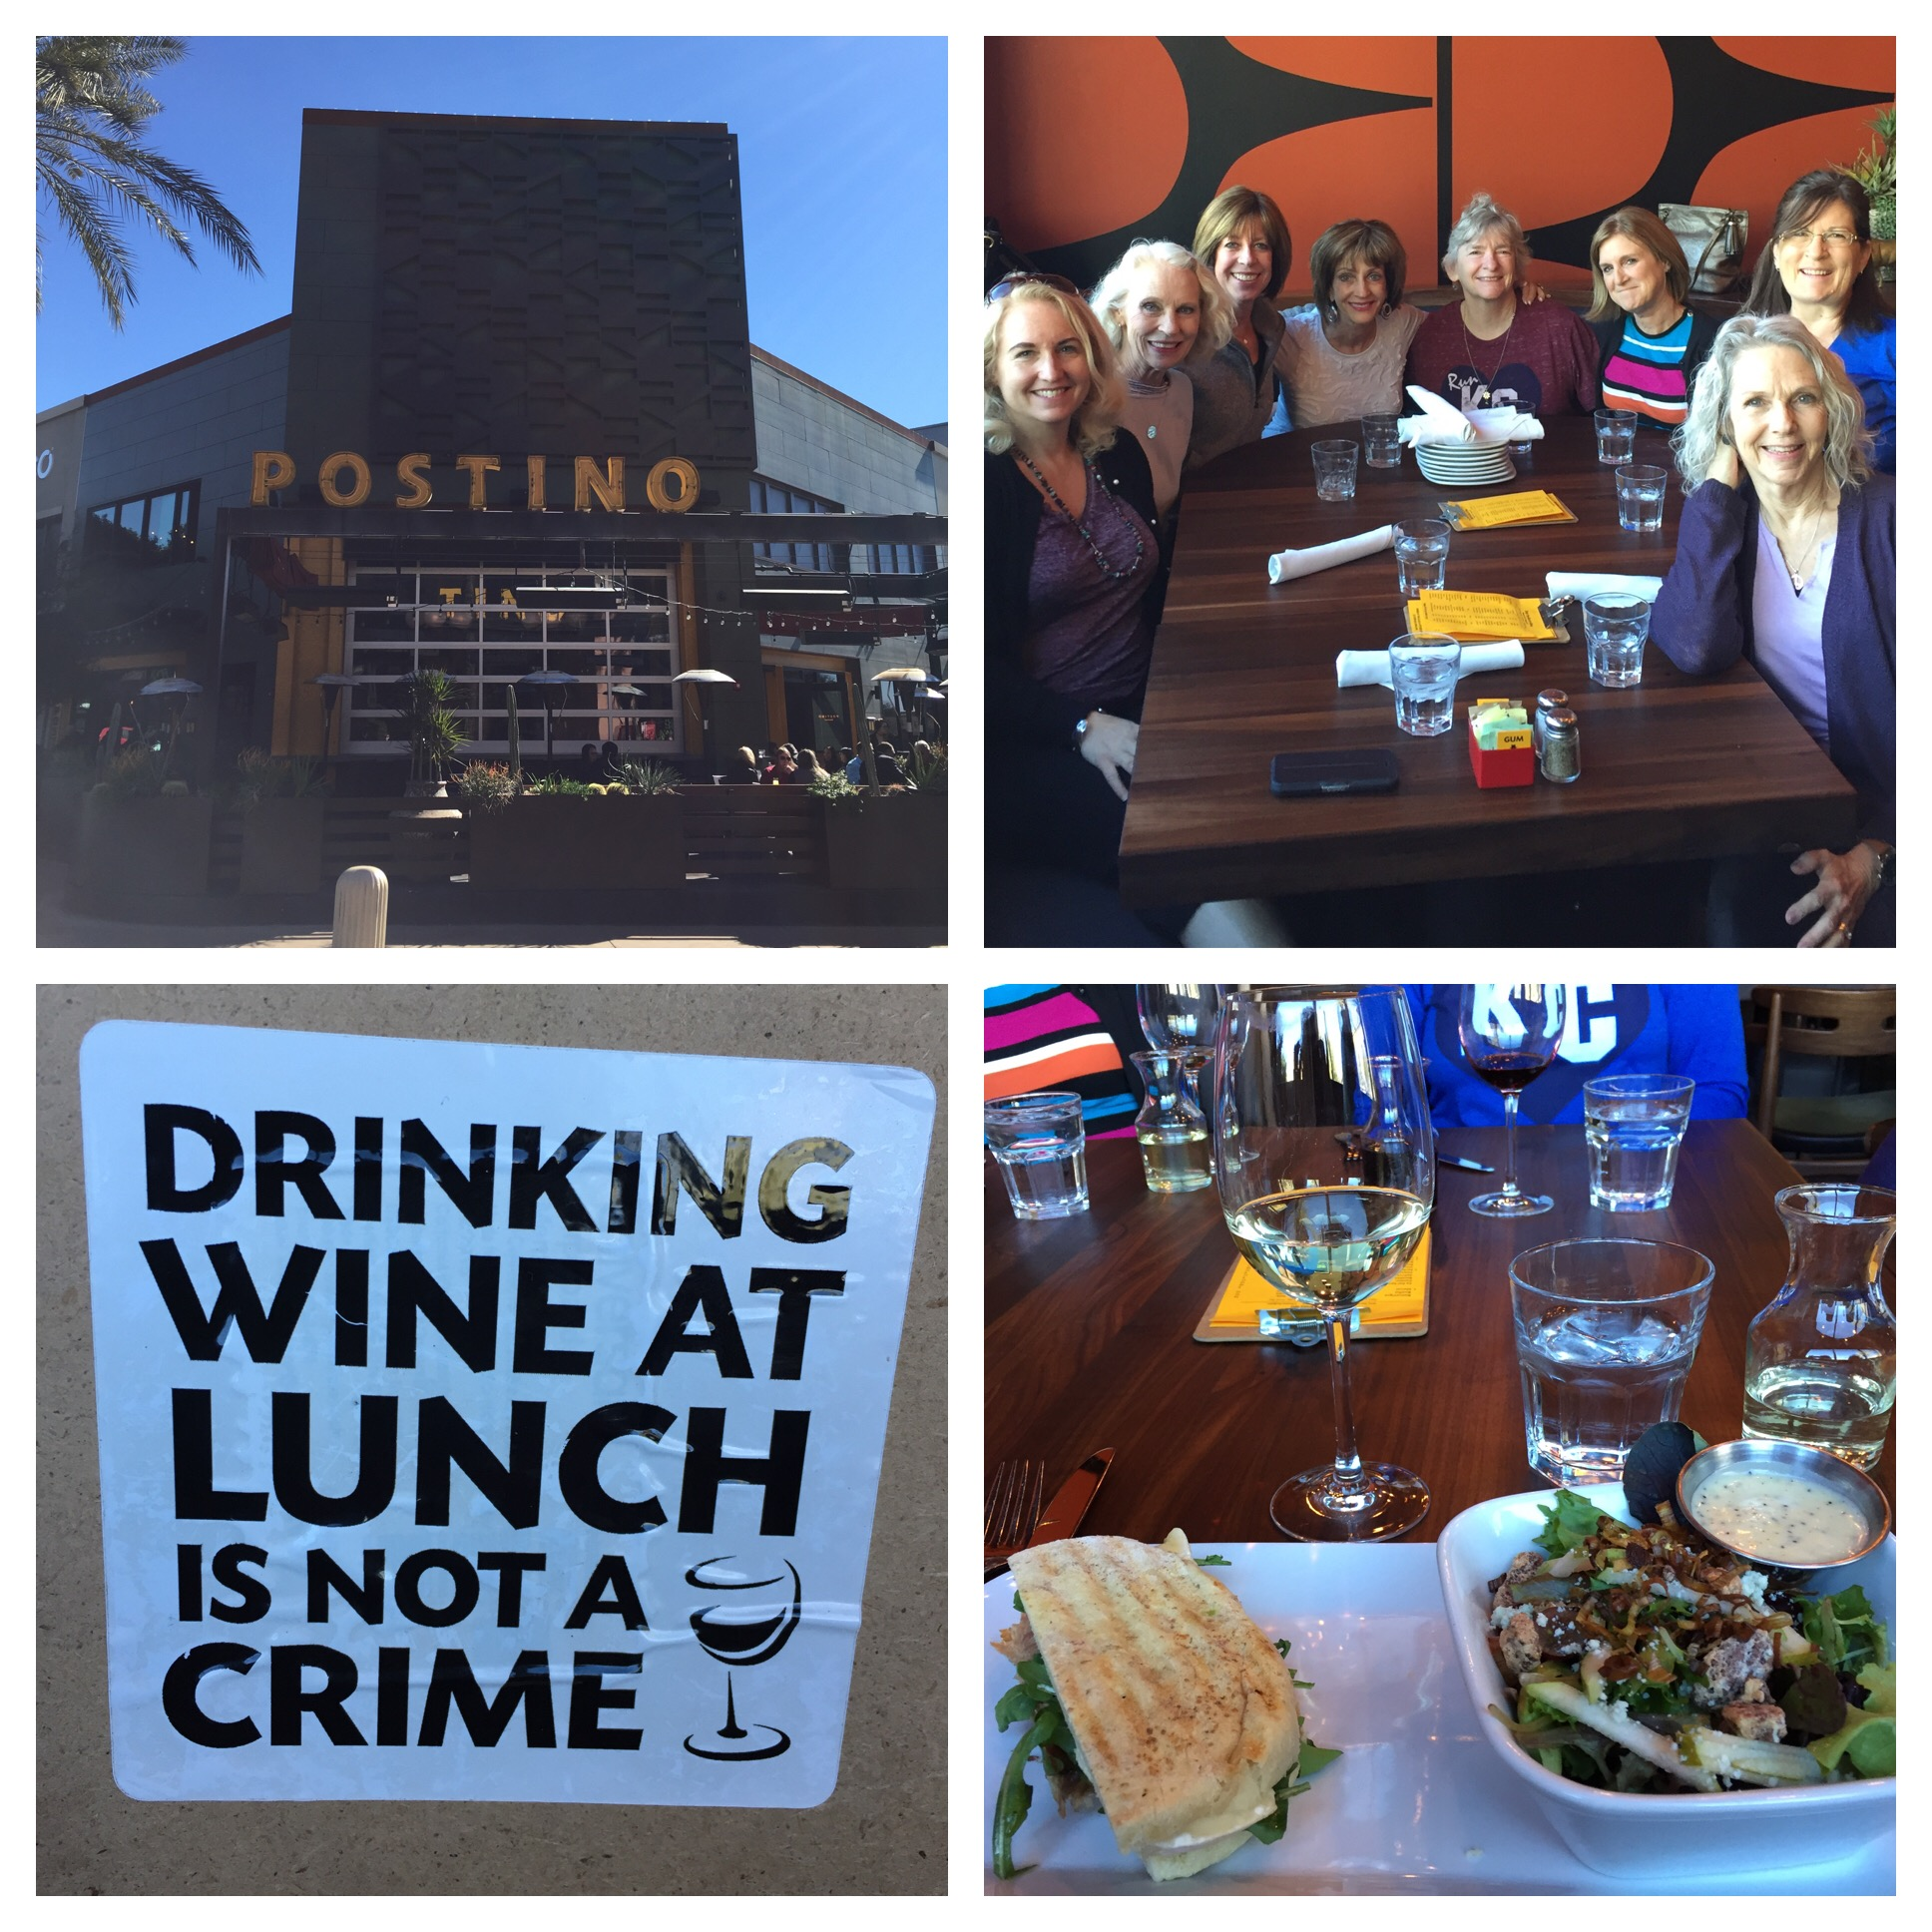 Kristen's sister Wendie who lives in Scottsdale joined us for a fun lunch - with wine of course! I had a delicious salad and half a panini. That was the lunch of choice for most - or salad and soup. I love their sign - TRUE!!!